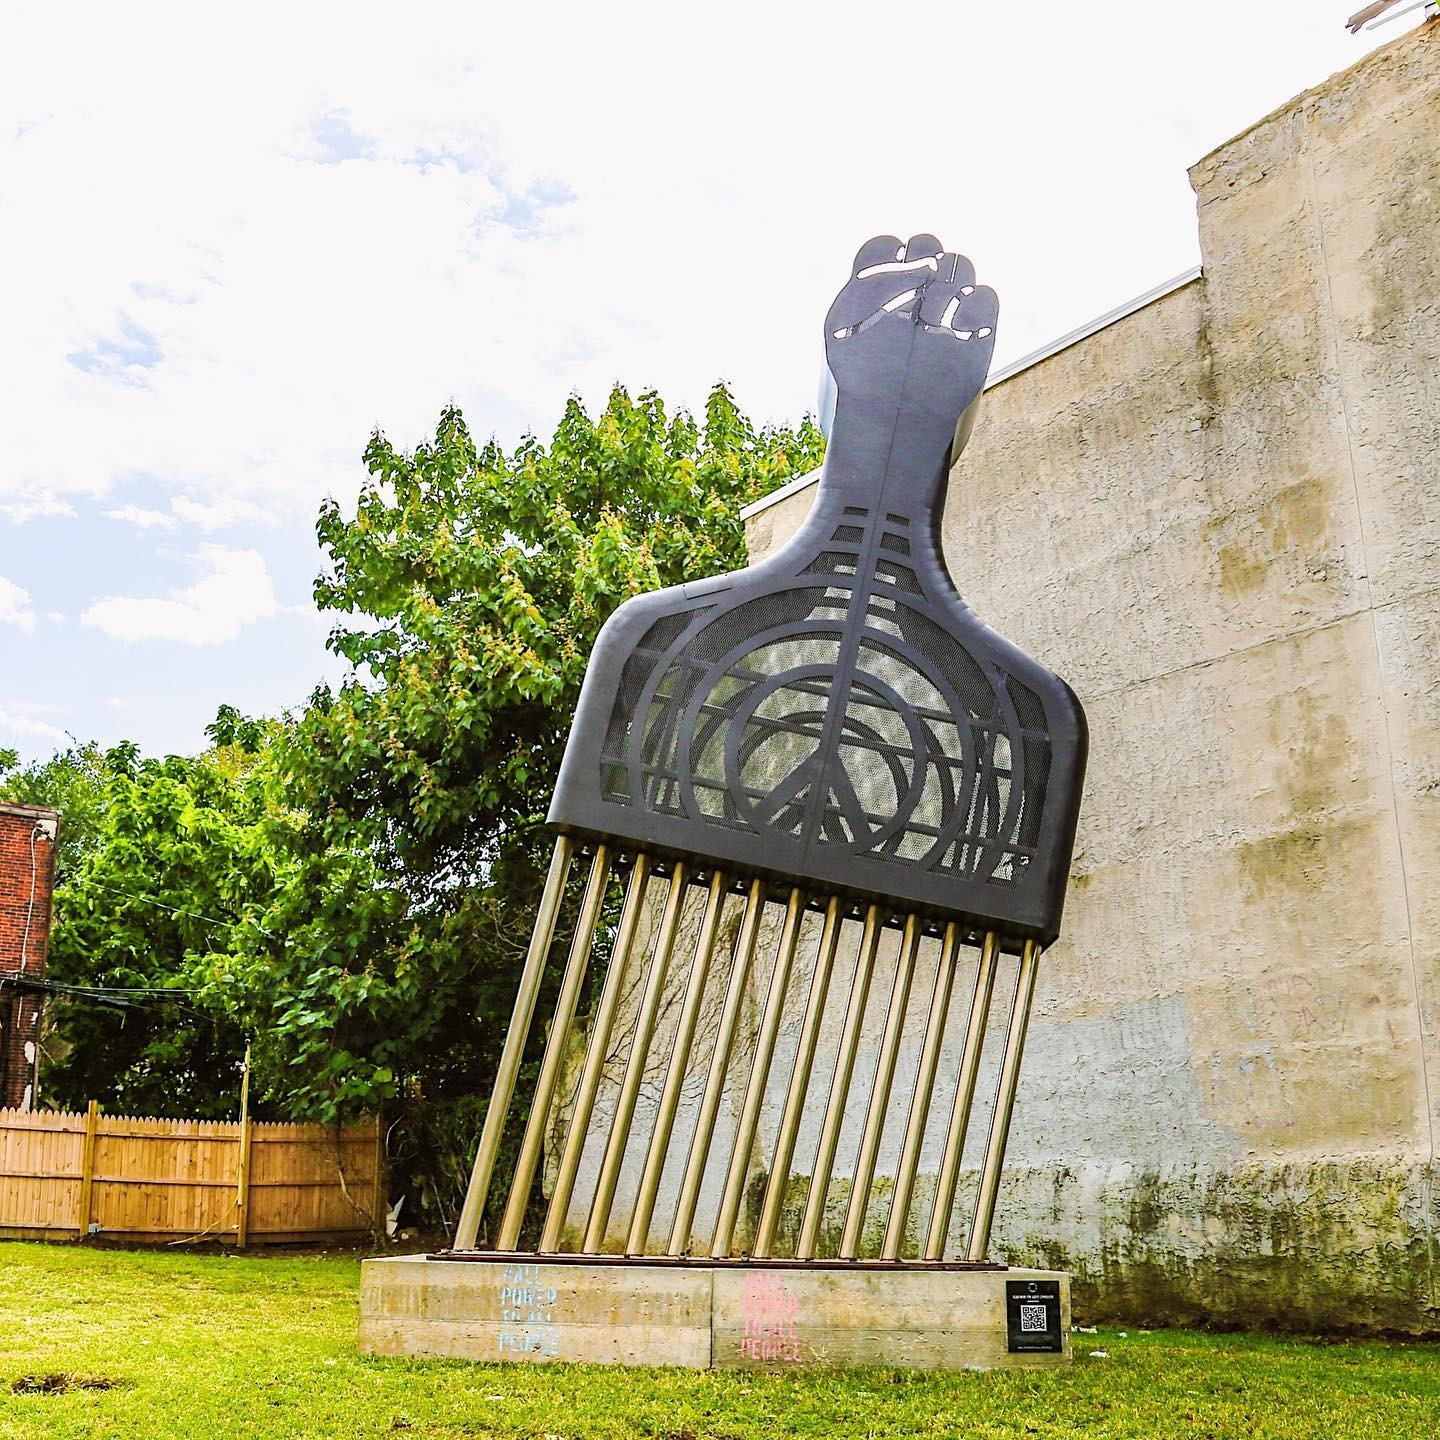 Artist Hank Willis Thomas Installs 25-foot Afro Pick Monument in West Philly